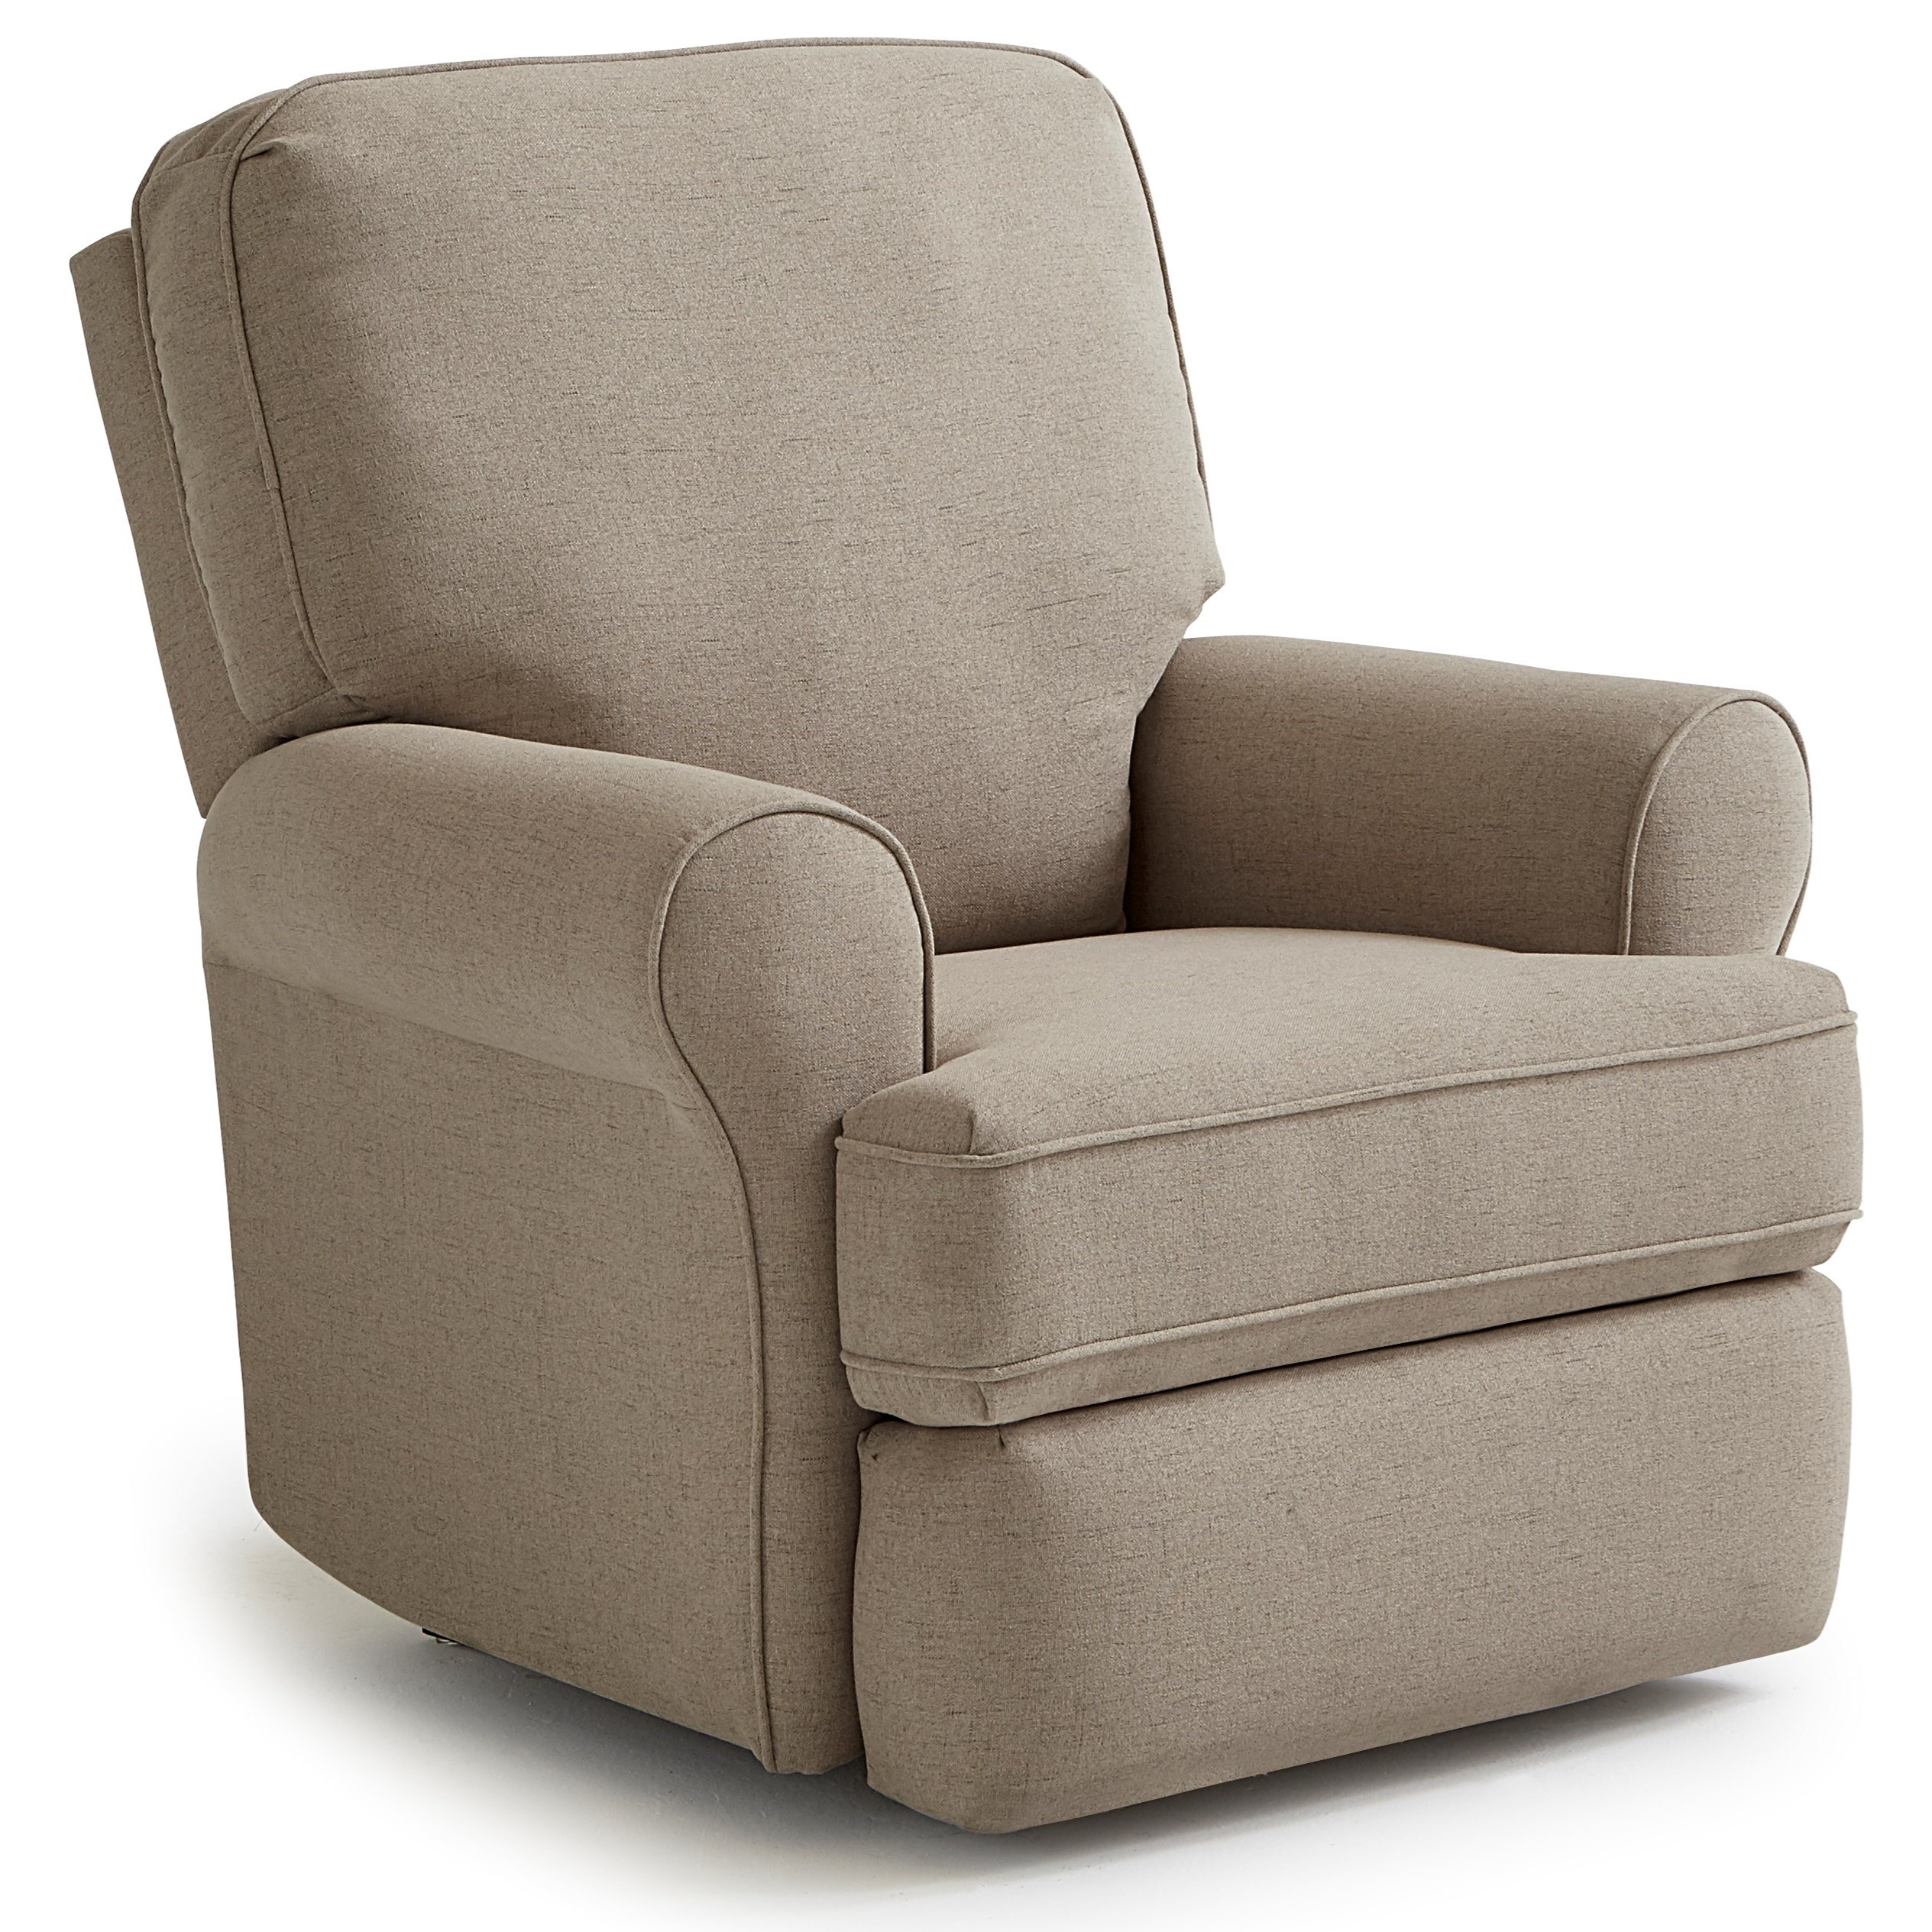 Best Home Furnishings Recliners Medium 5ni27 Tryp Rocker